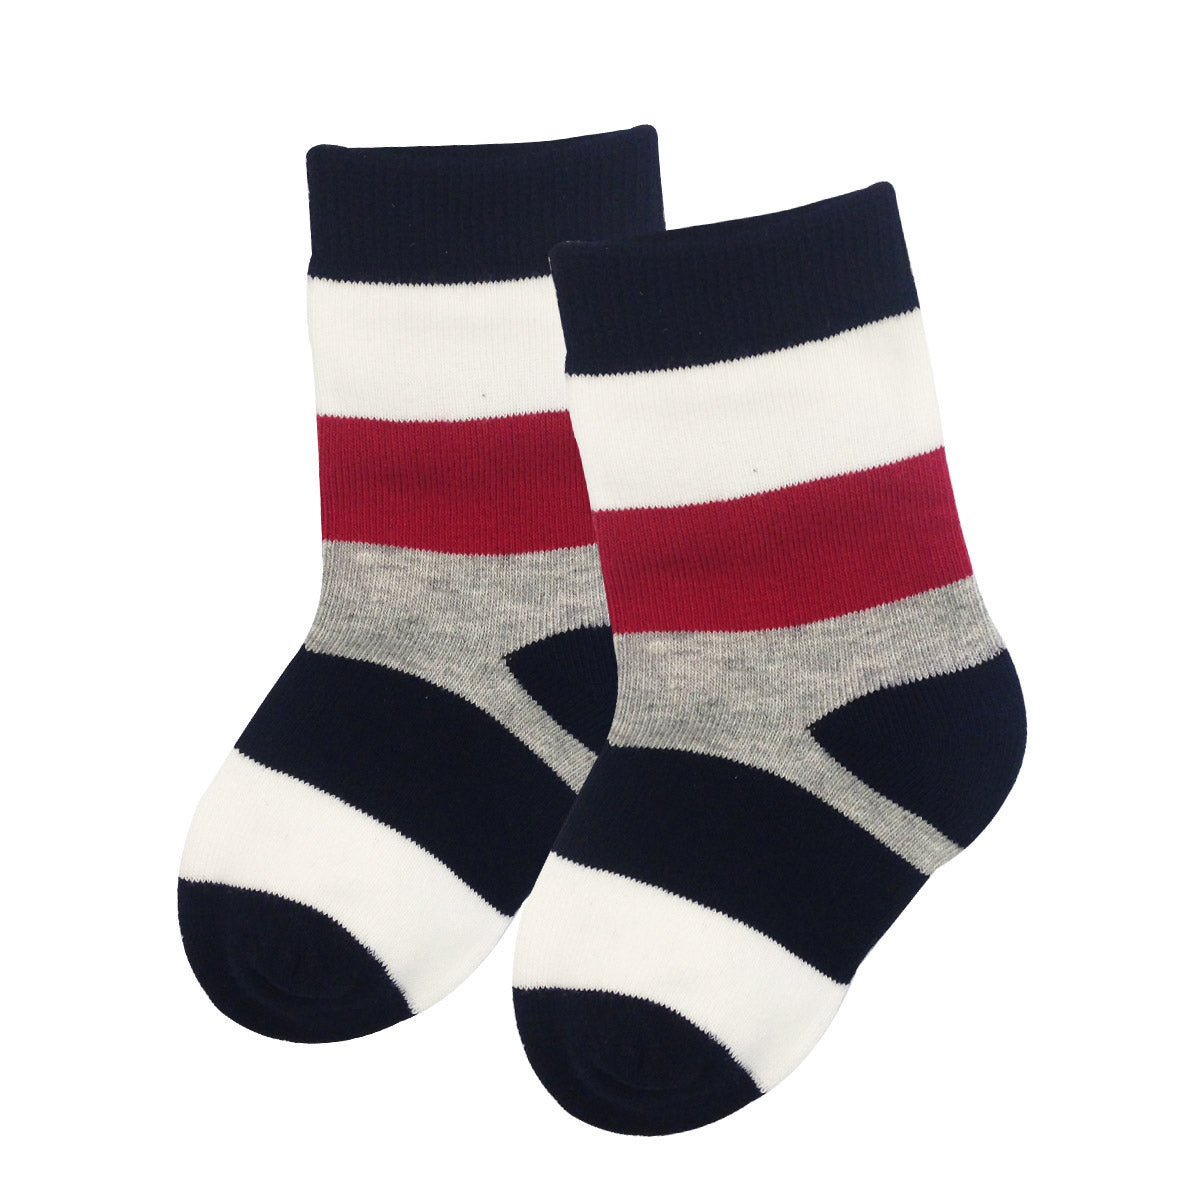 Wrapables Cars and Stripes Toddler Socks (Set of 5)